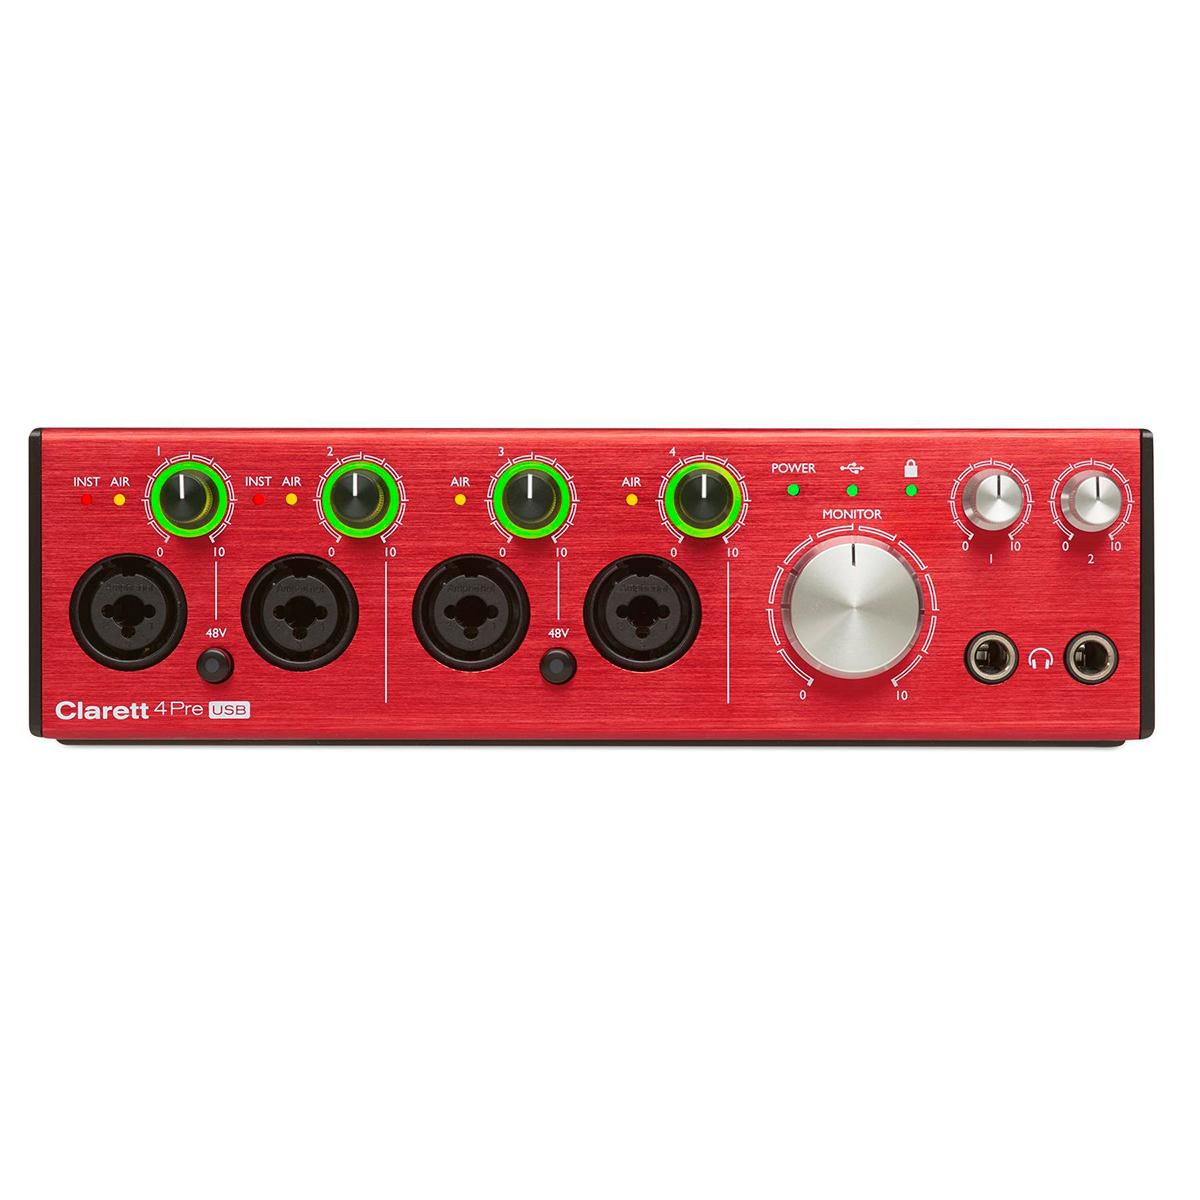 Focusrite Clarett 4 Pre USB - Interface audio USB